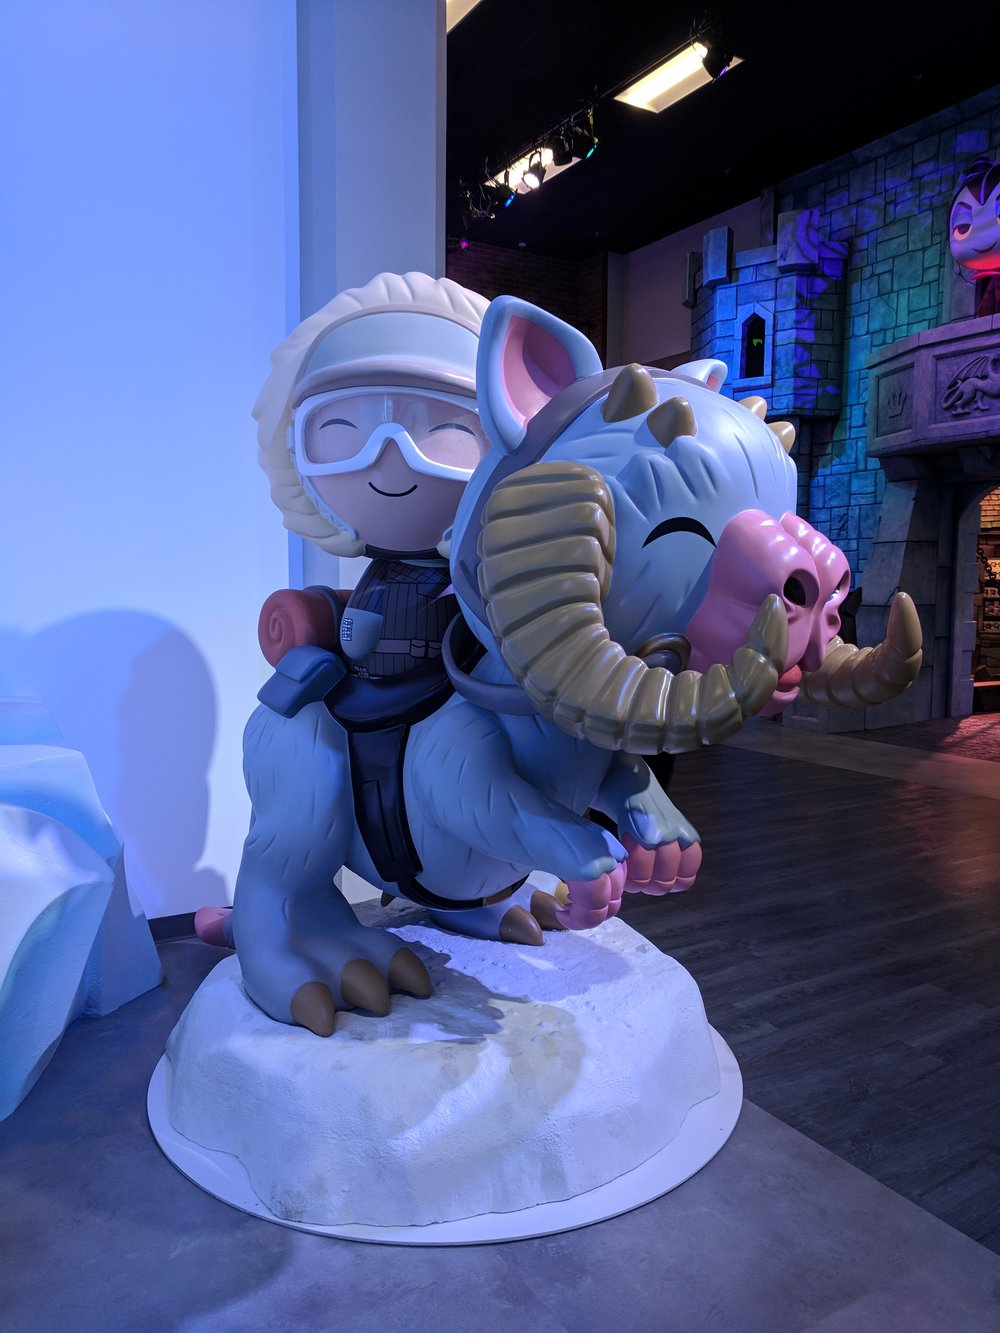 Back to cute with this Giant Dorbz rendition of Han and his tauntaun